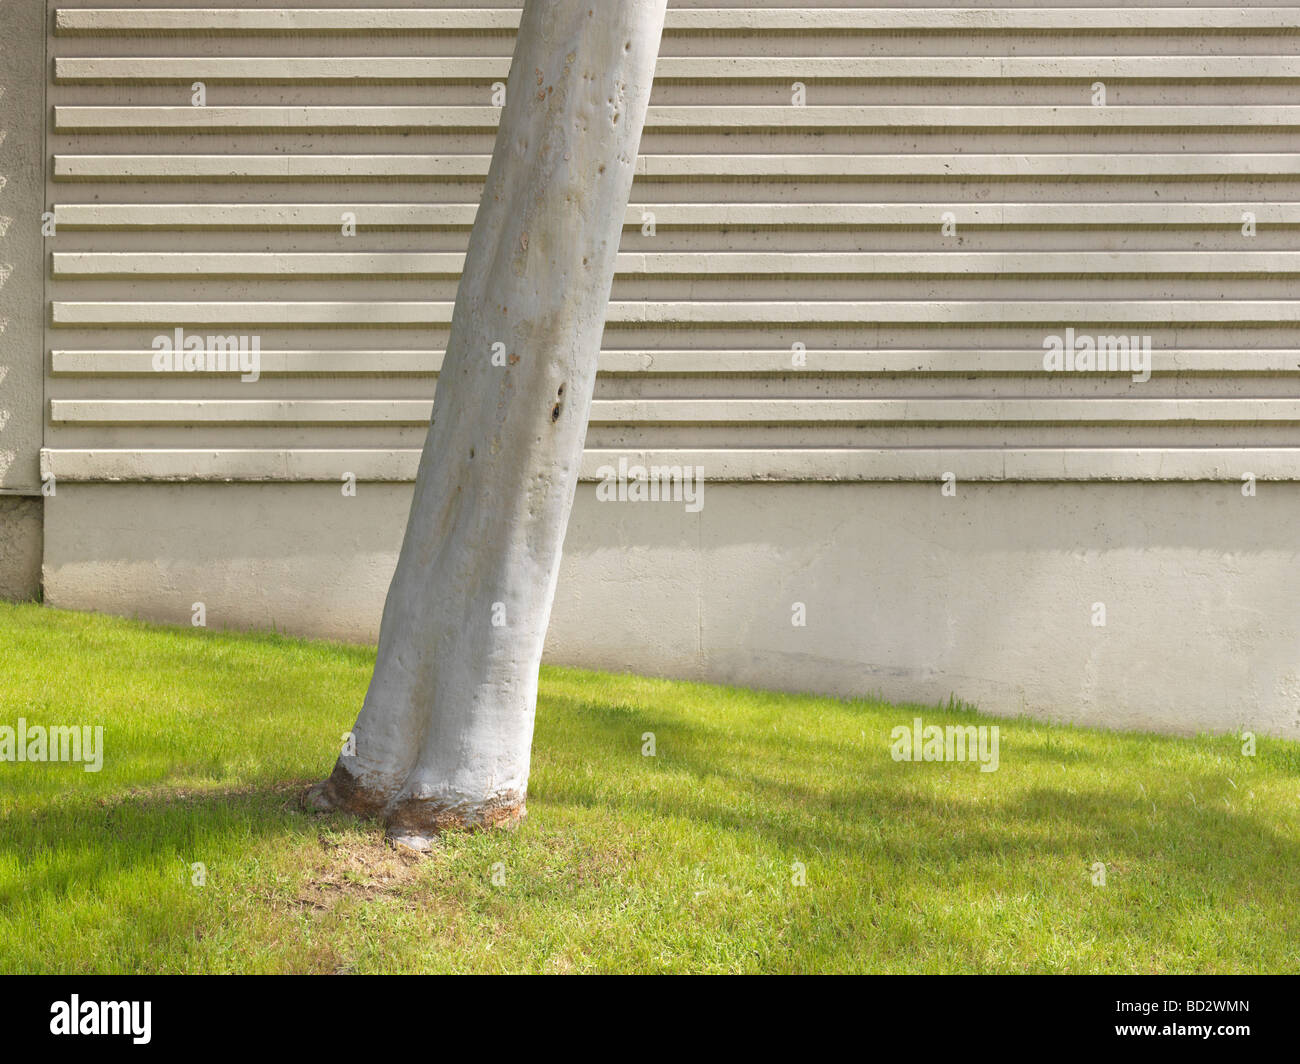 Stem on grass in front of concrete wall - Stock Image